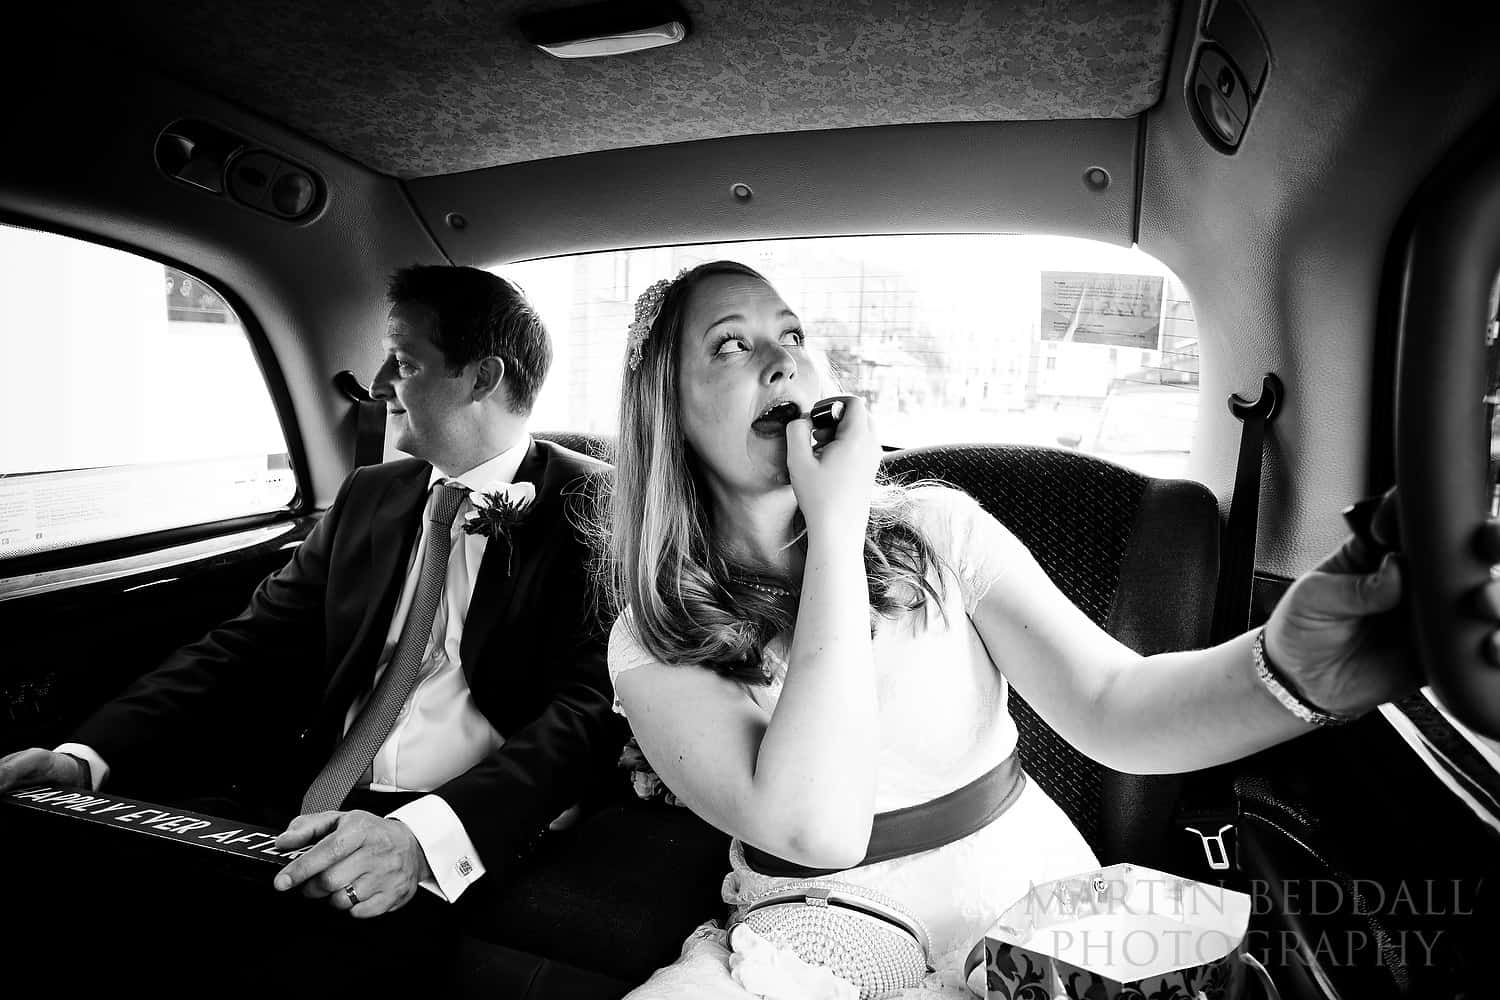 Bride adjusts her makeup in the London taxi